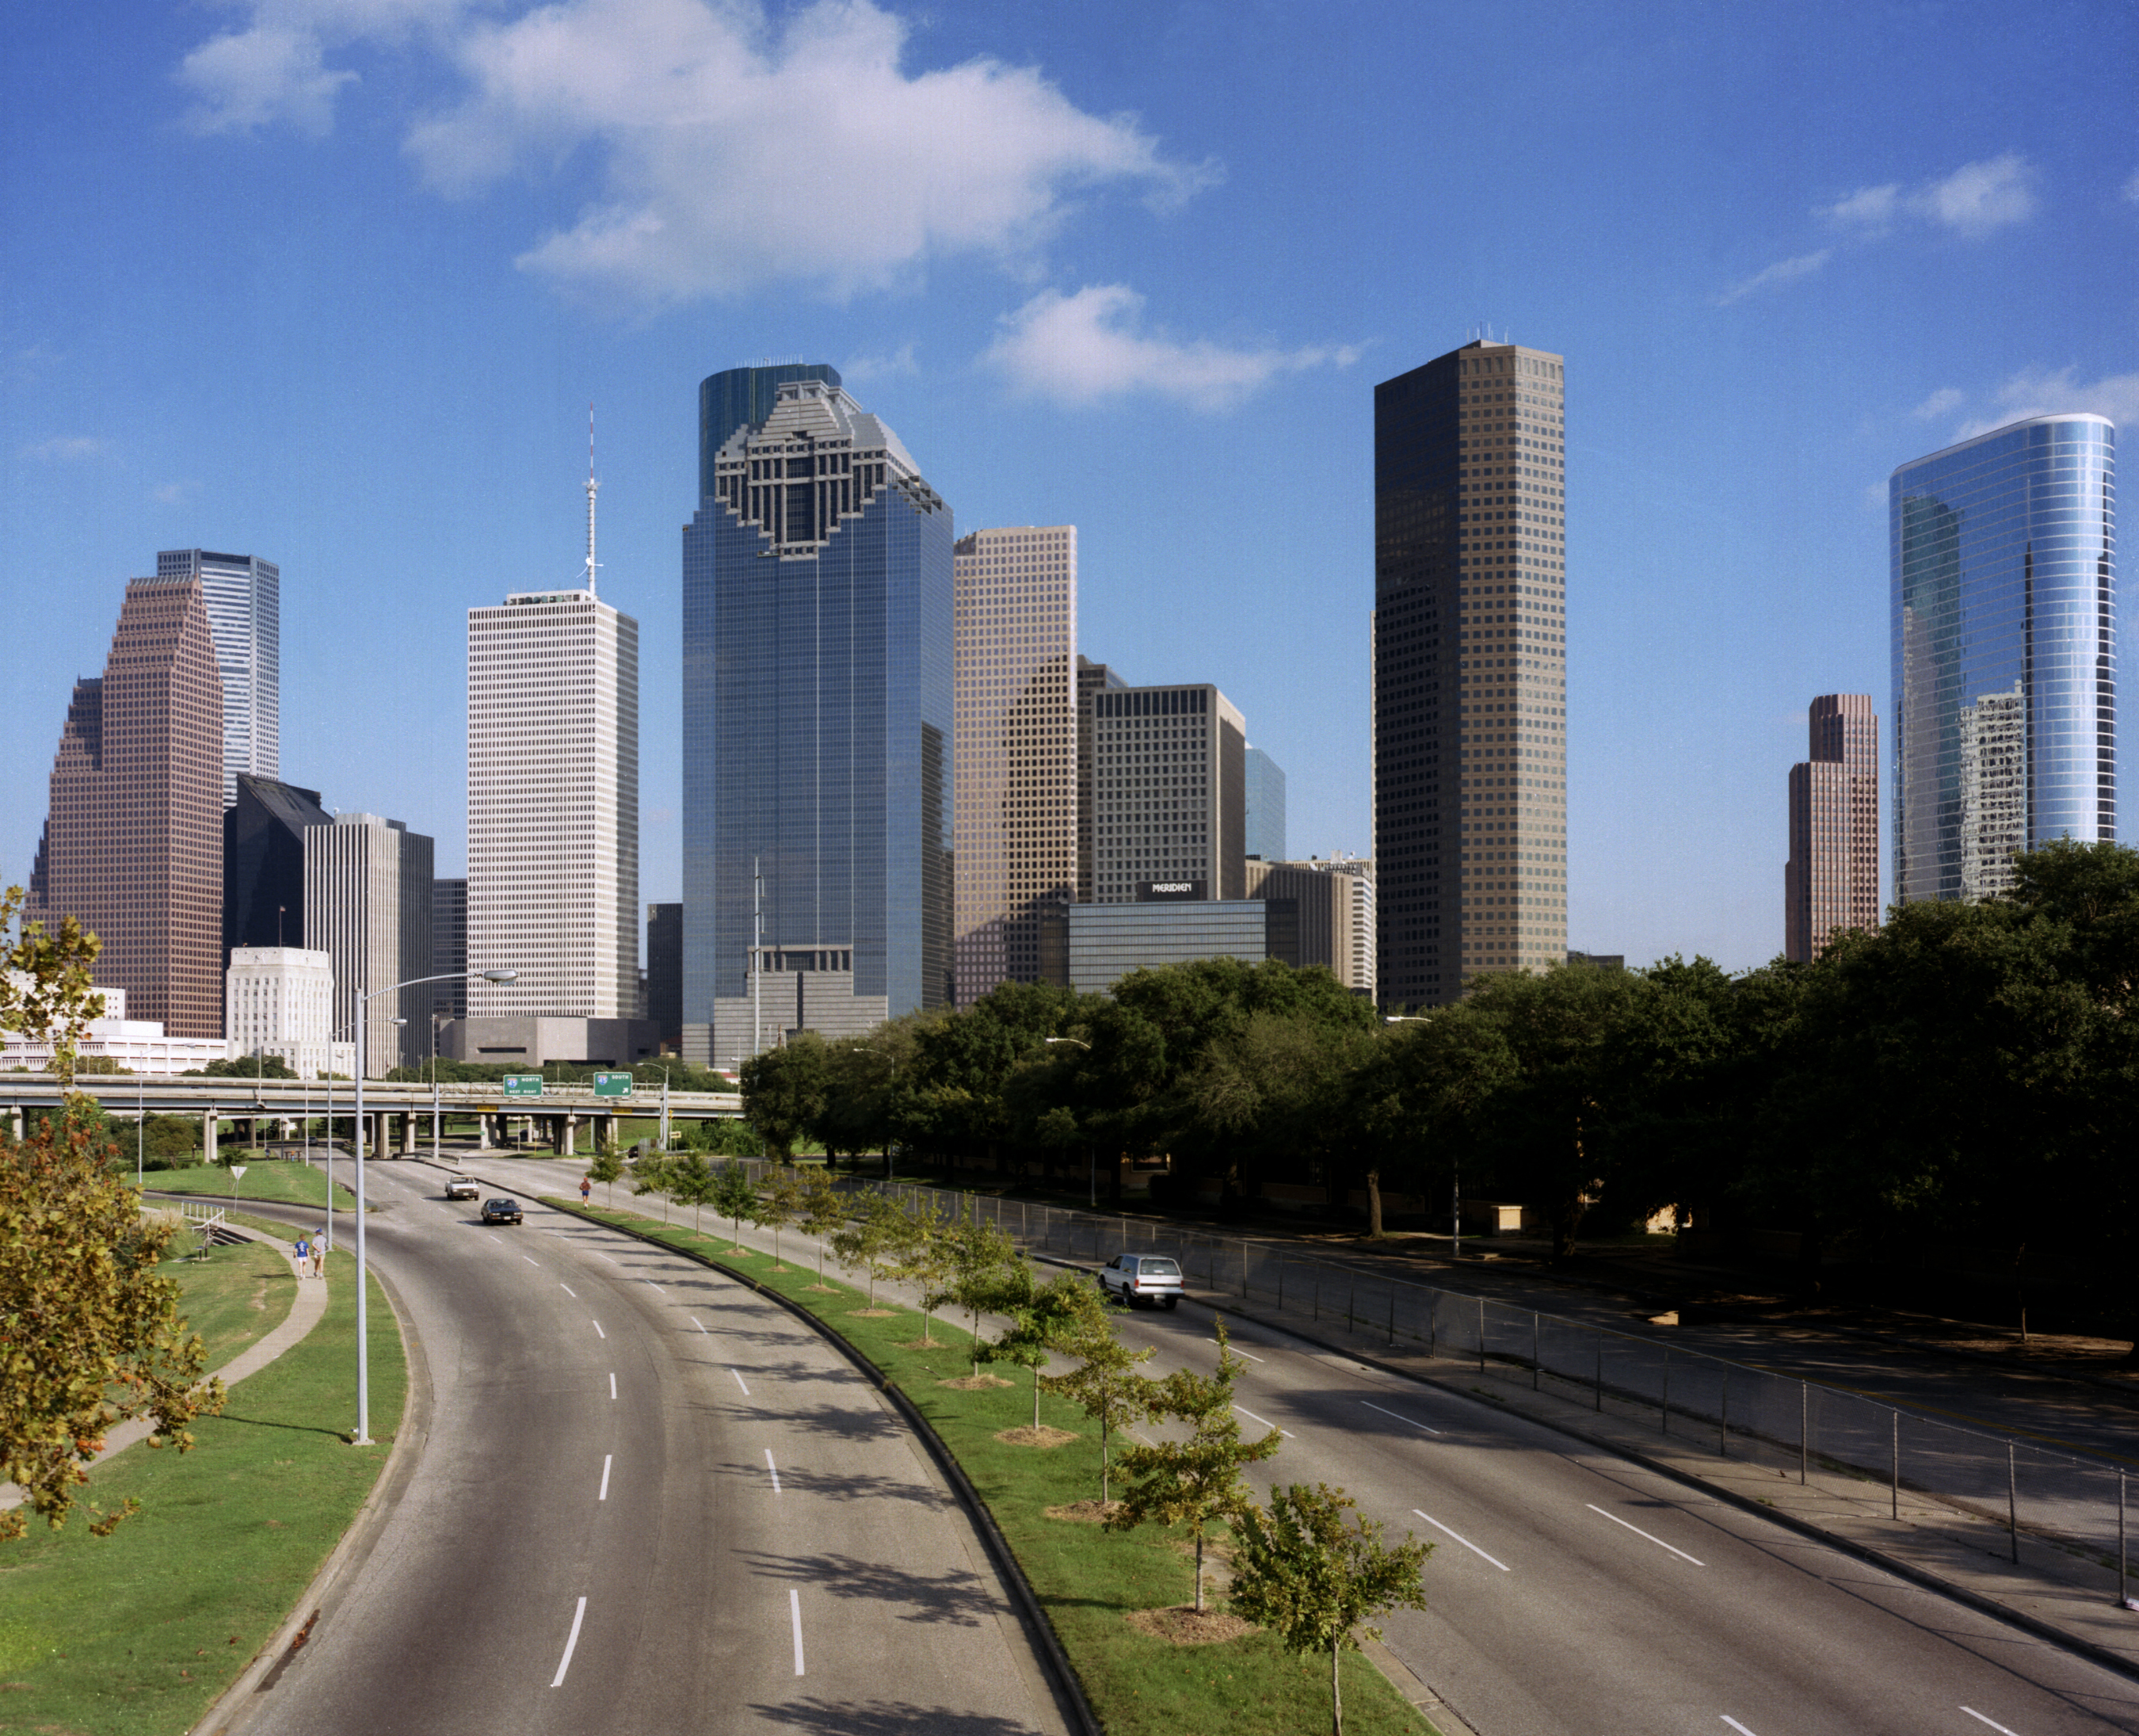 Top leed certified coastal destinations for the summer us the houston metro area inclusive of the woodlands and sugar land boasts 934 leed certified projects xflitez Image collections